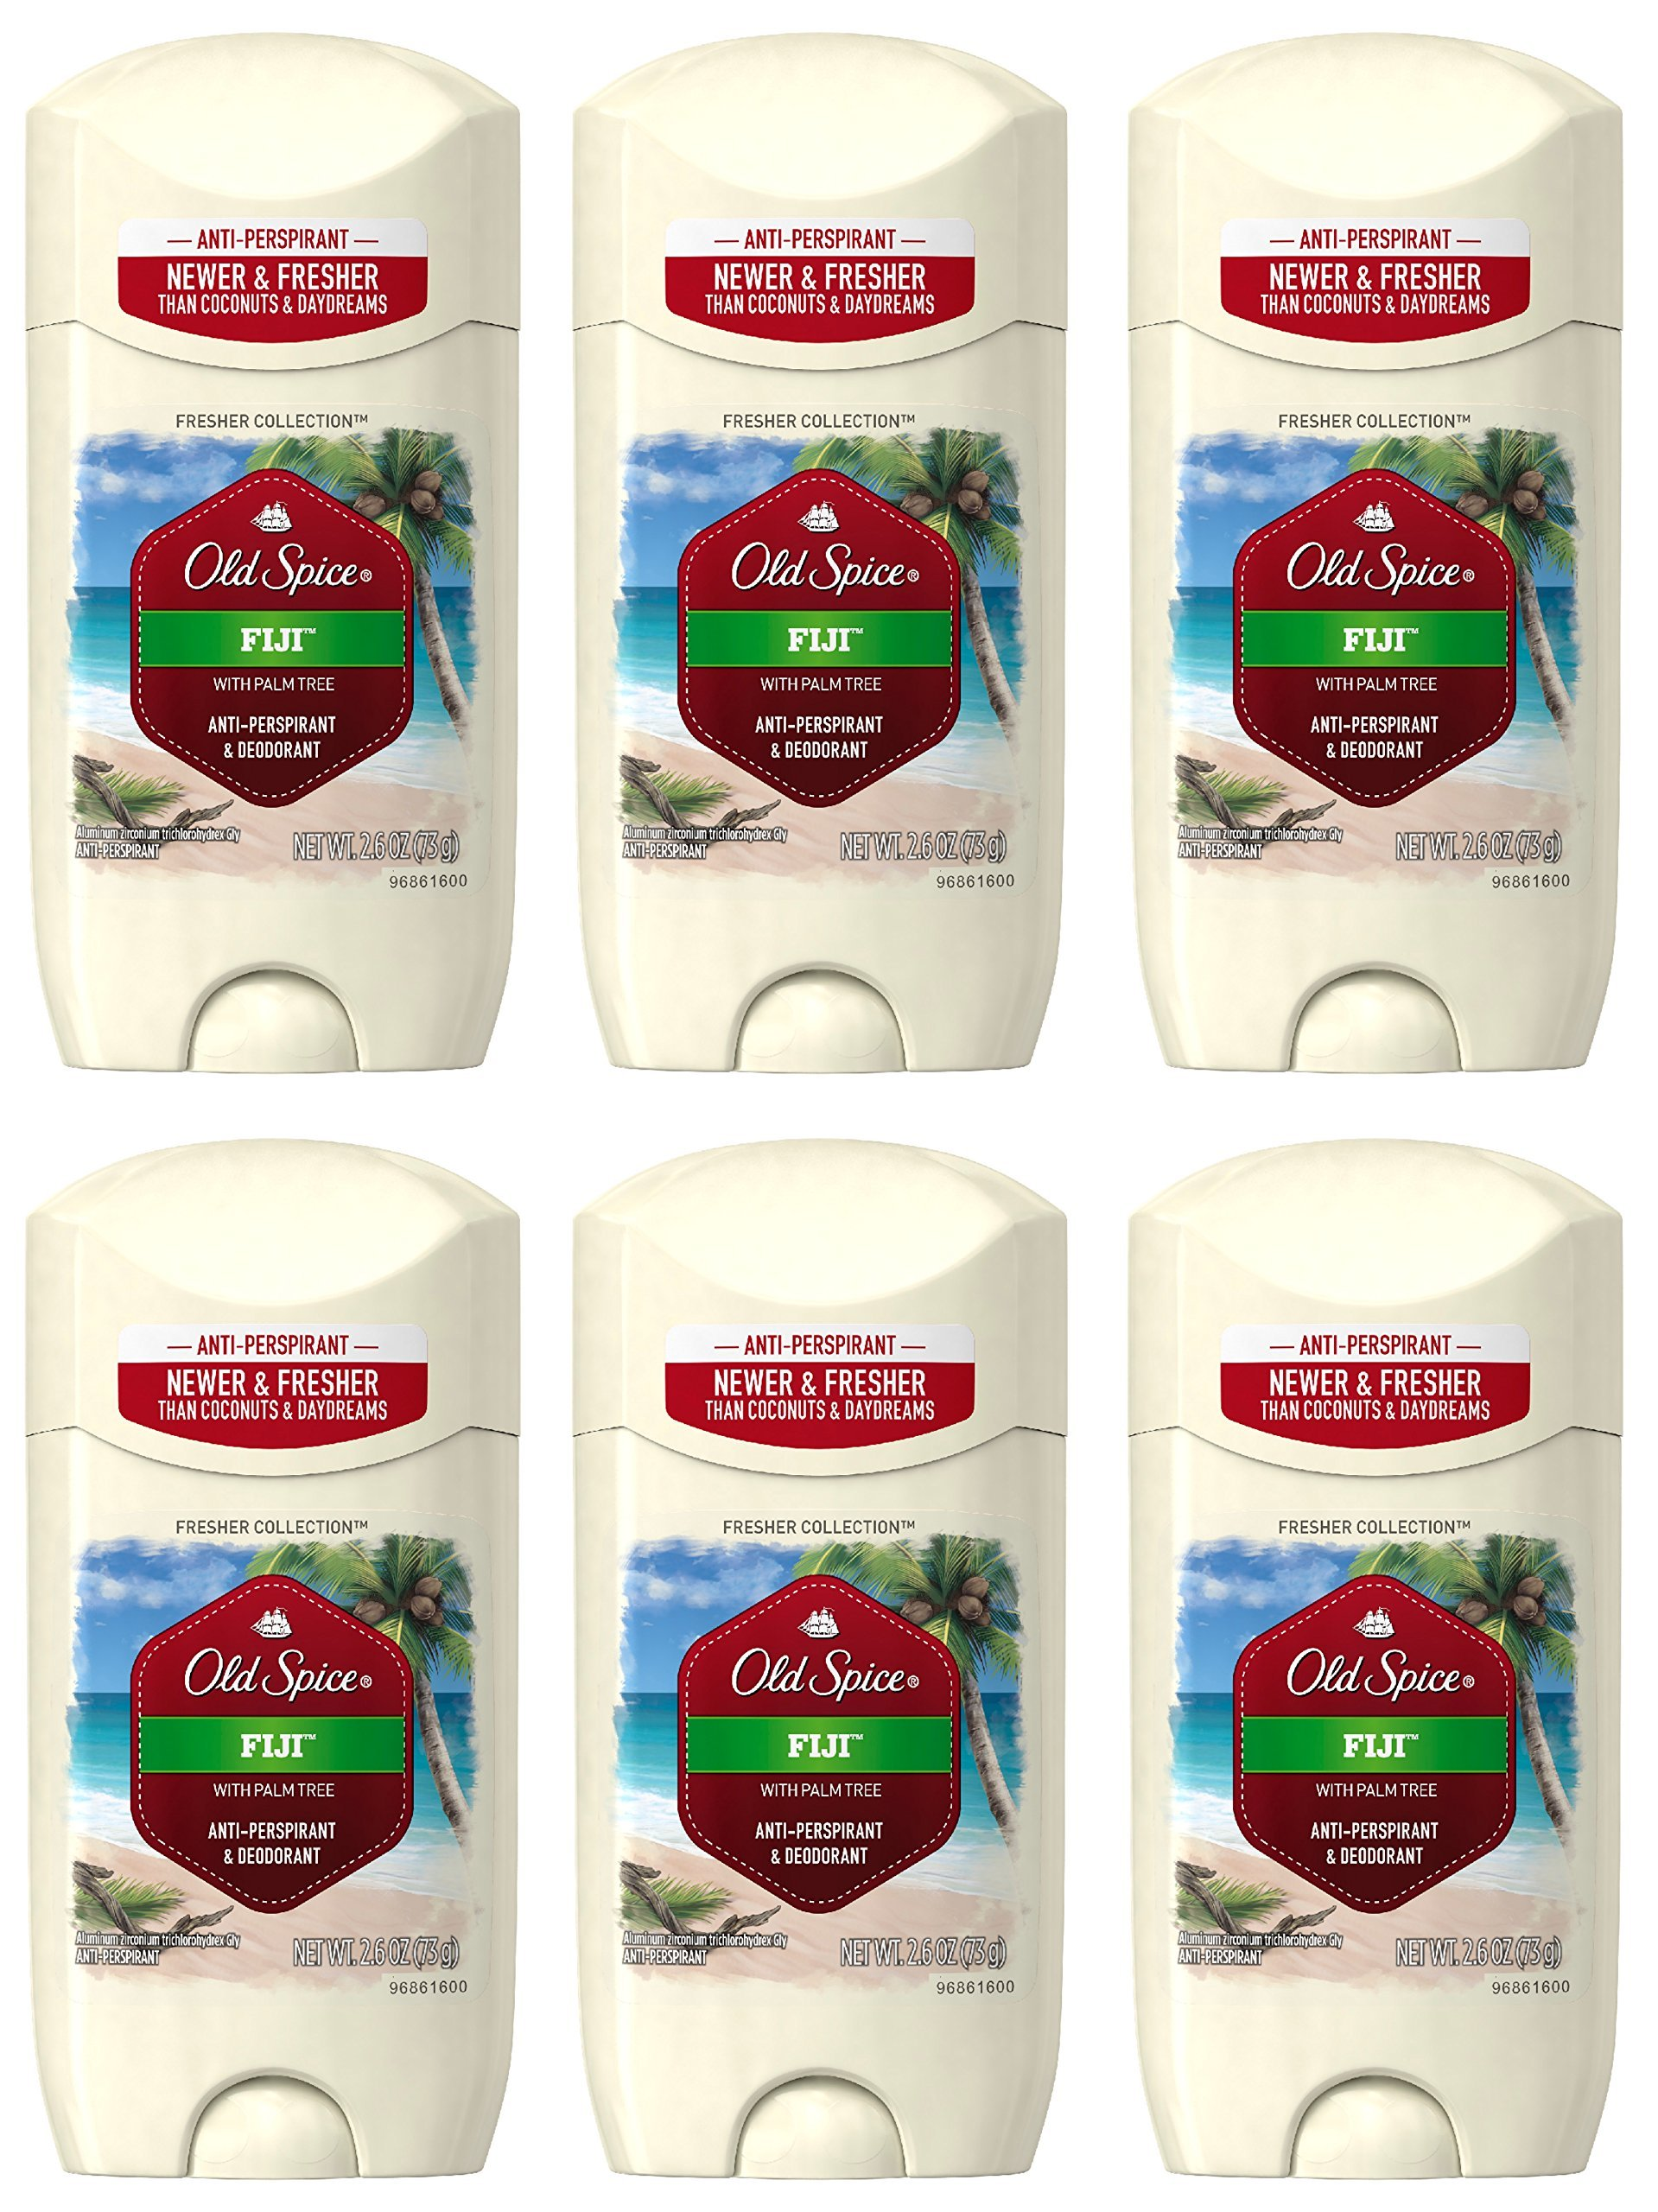 Old Spice Antiperspirant and Deodorant for Men, Fresher Collection, Fiji Invisible Solid, Coconut & Tropical Wood Scent, 2.6 Oz (Pack of 6)